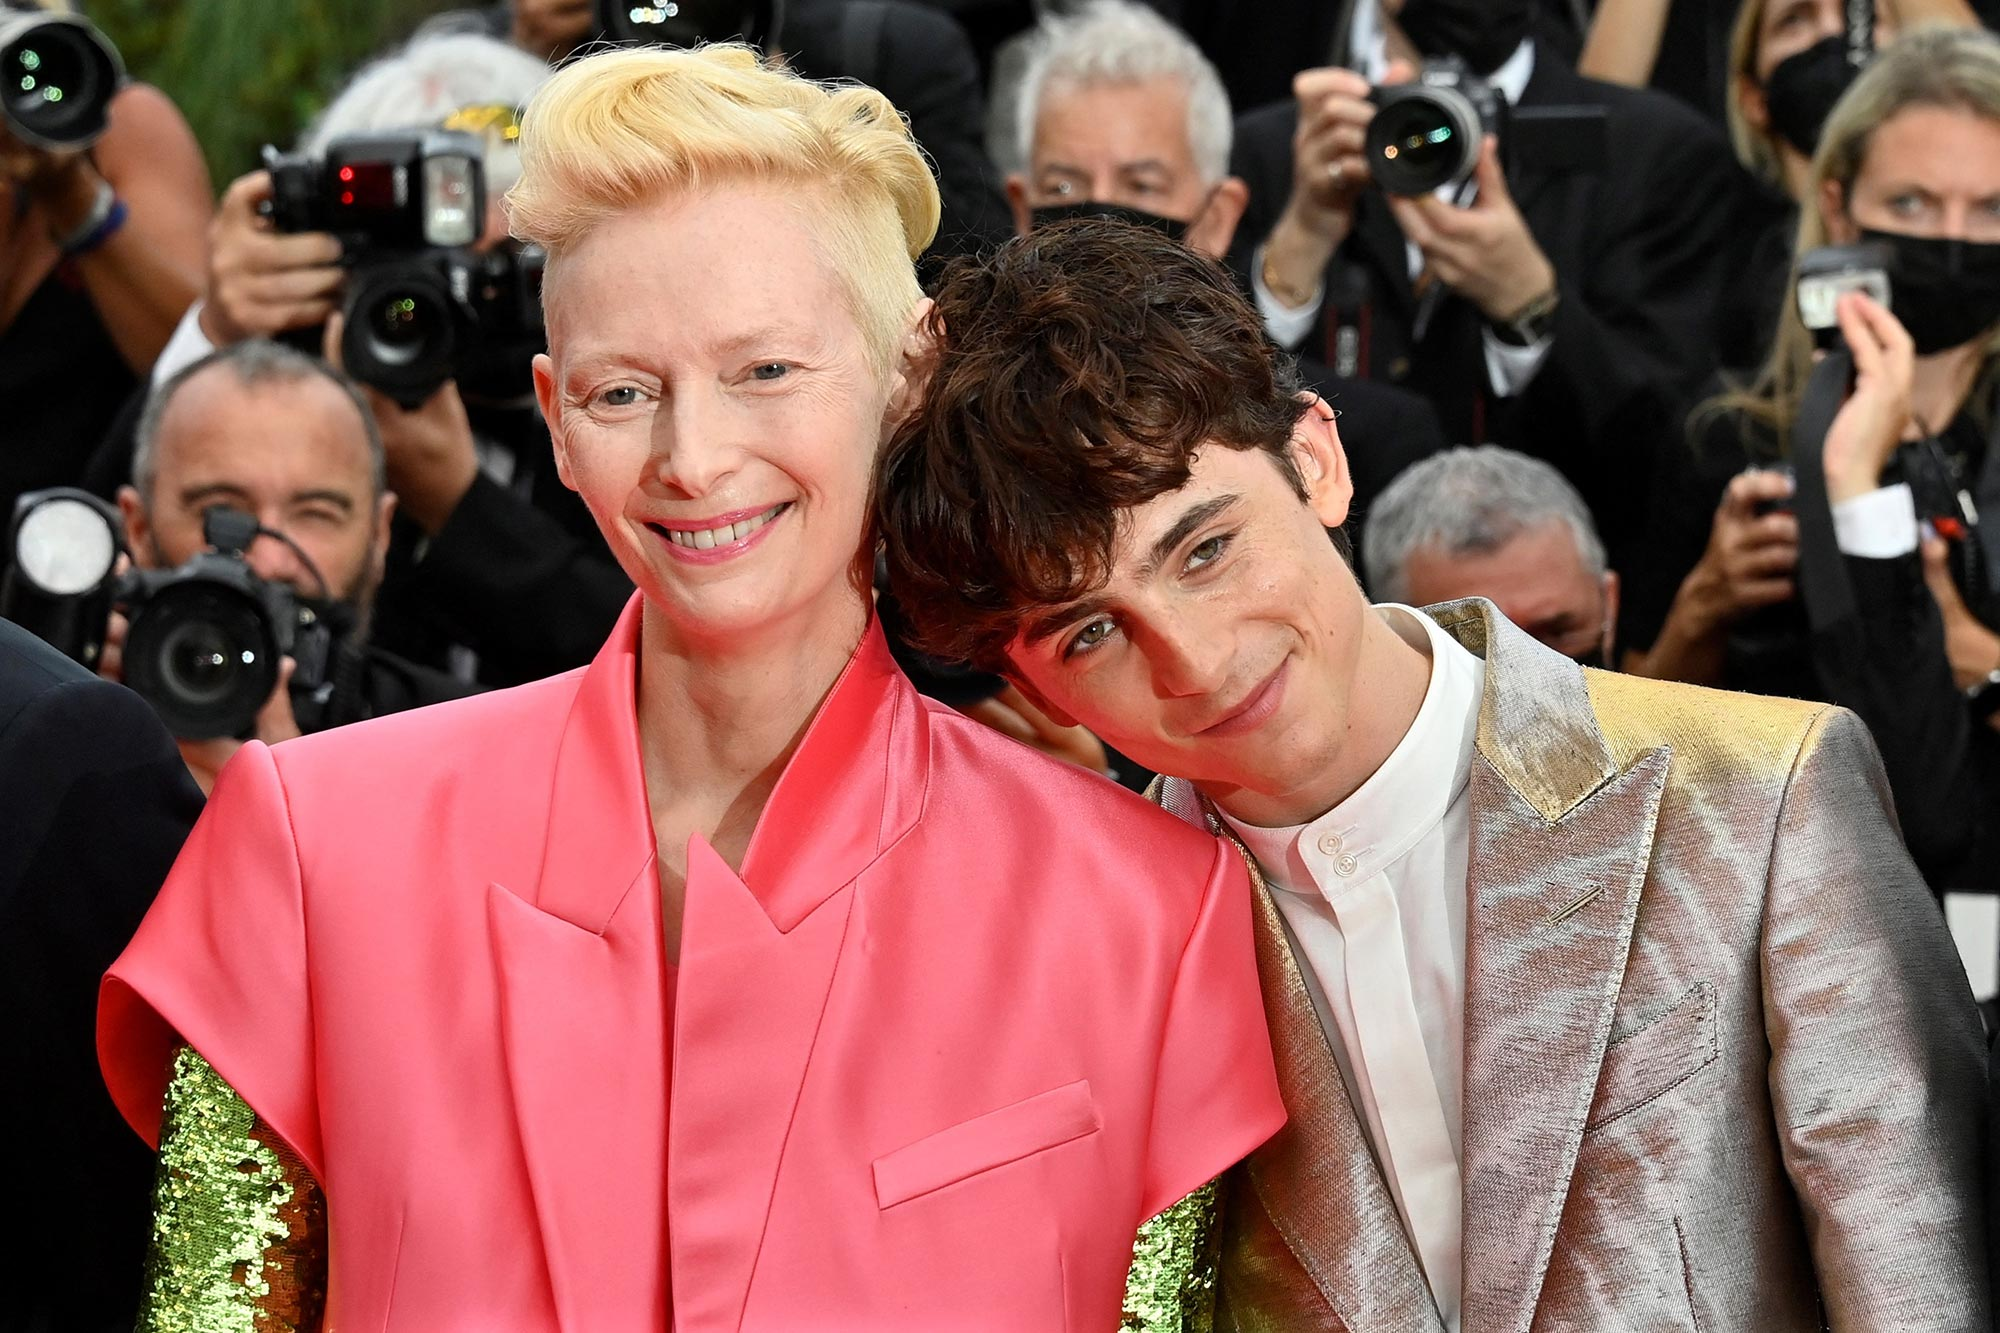 Cannes 2021 Red Carpet